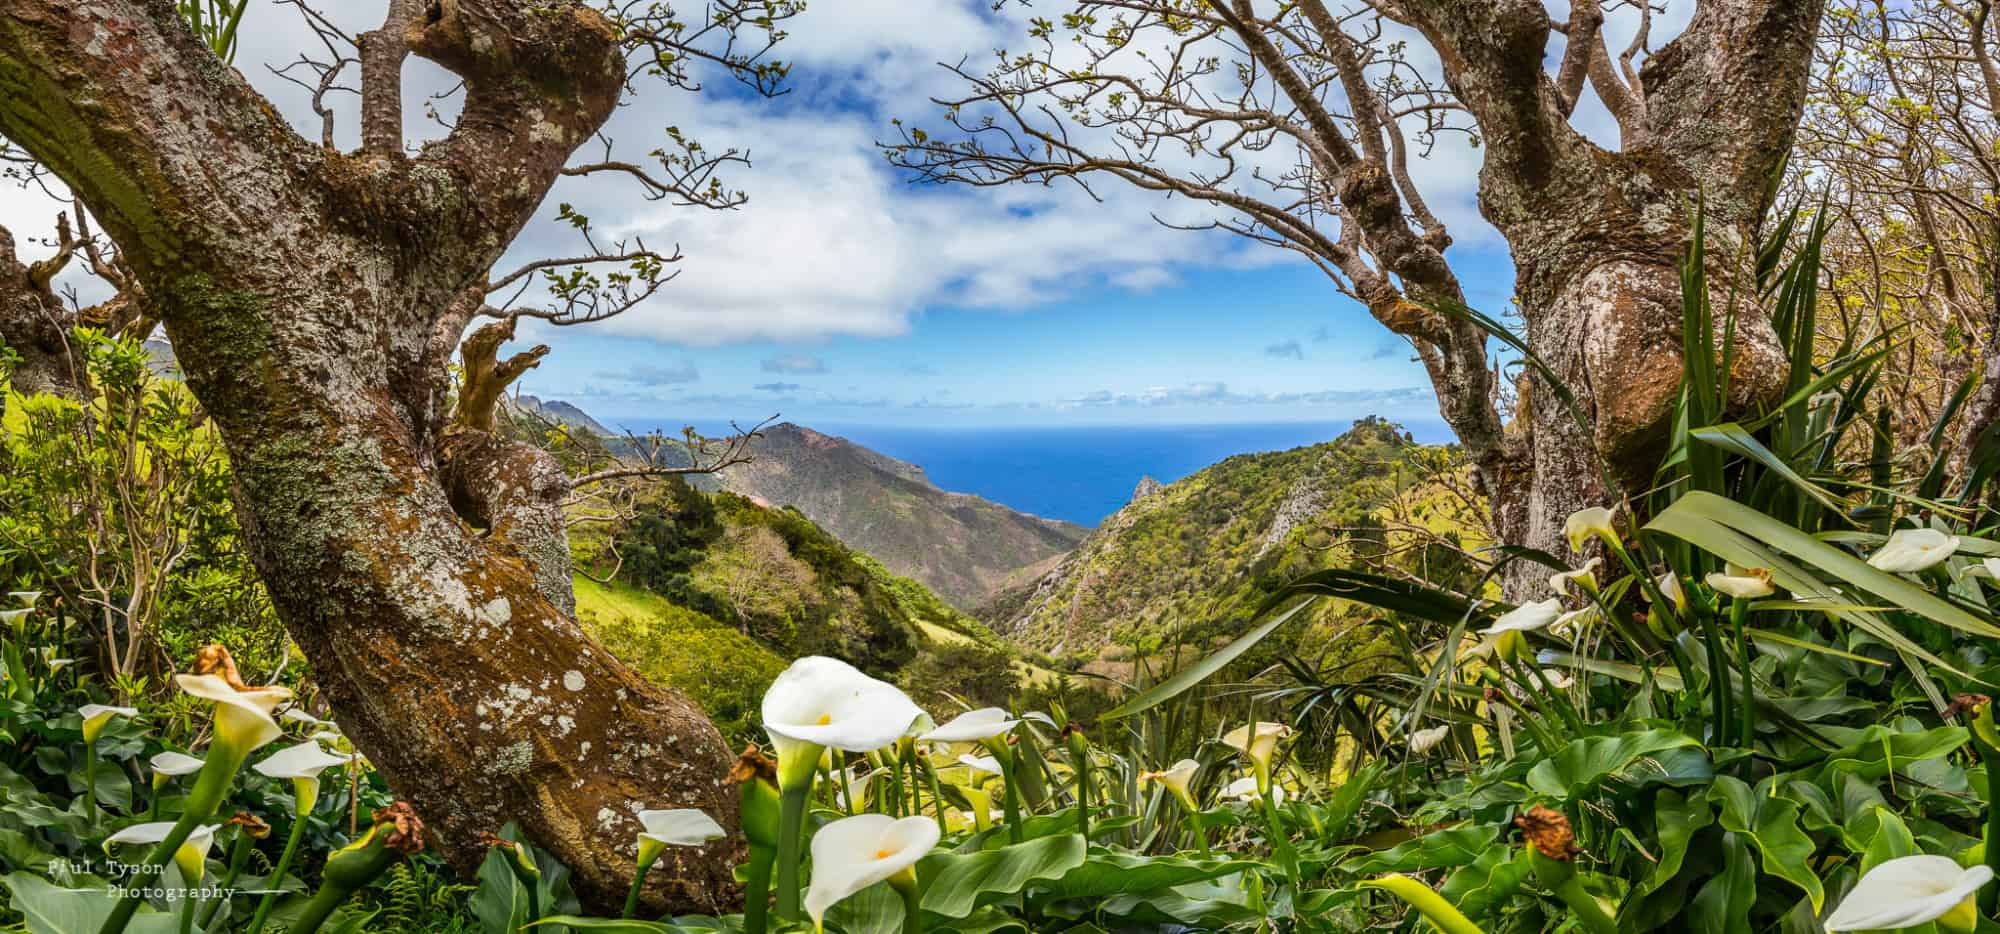 Arum lilies overlooking Sandy Bay, St Helena Copyright: Paul Tyson